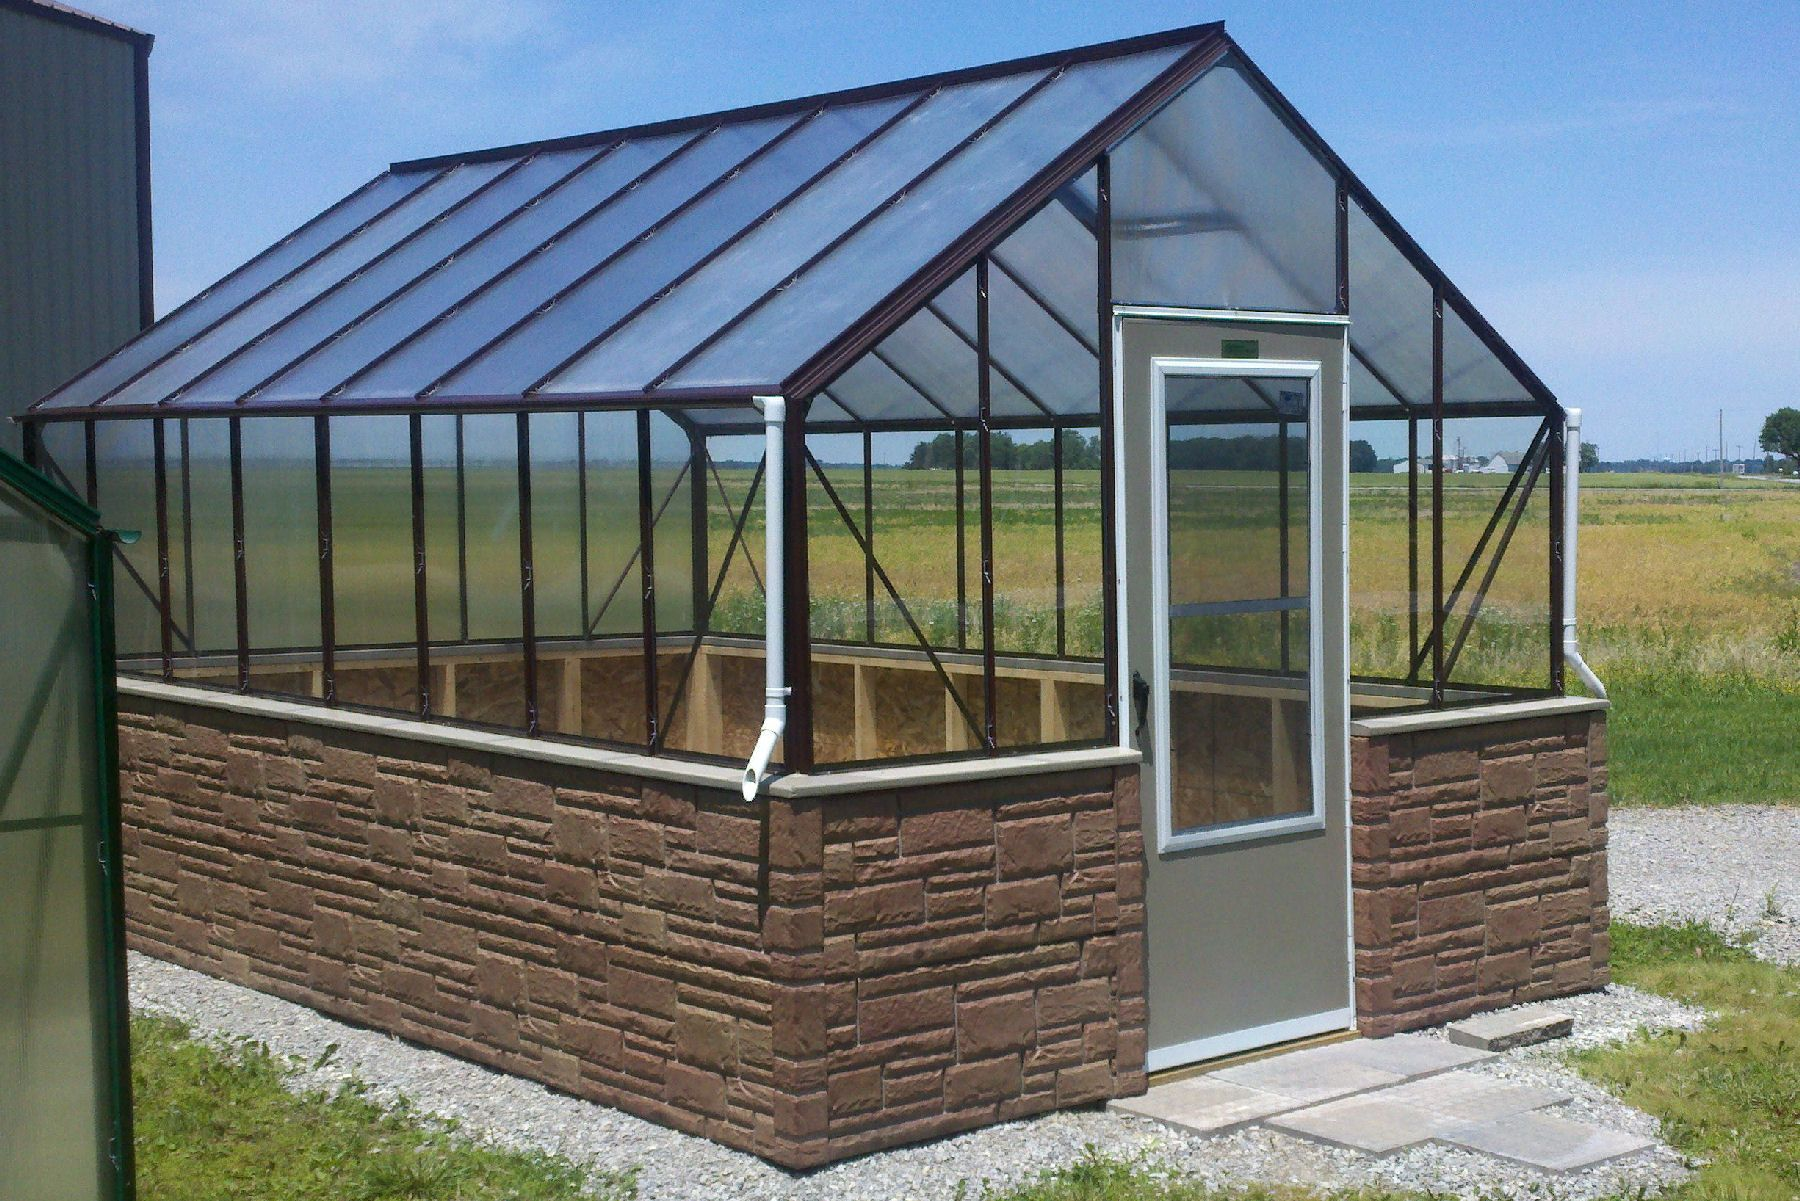 See Through Polycarbonate Greenhouse | Garden ideas